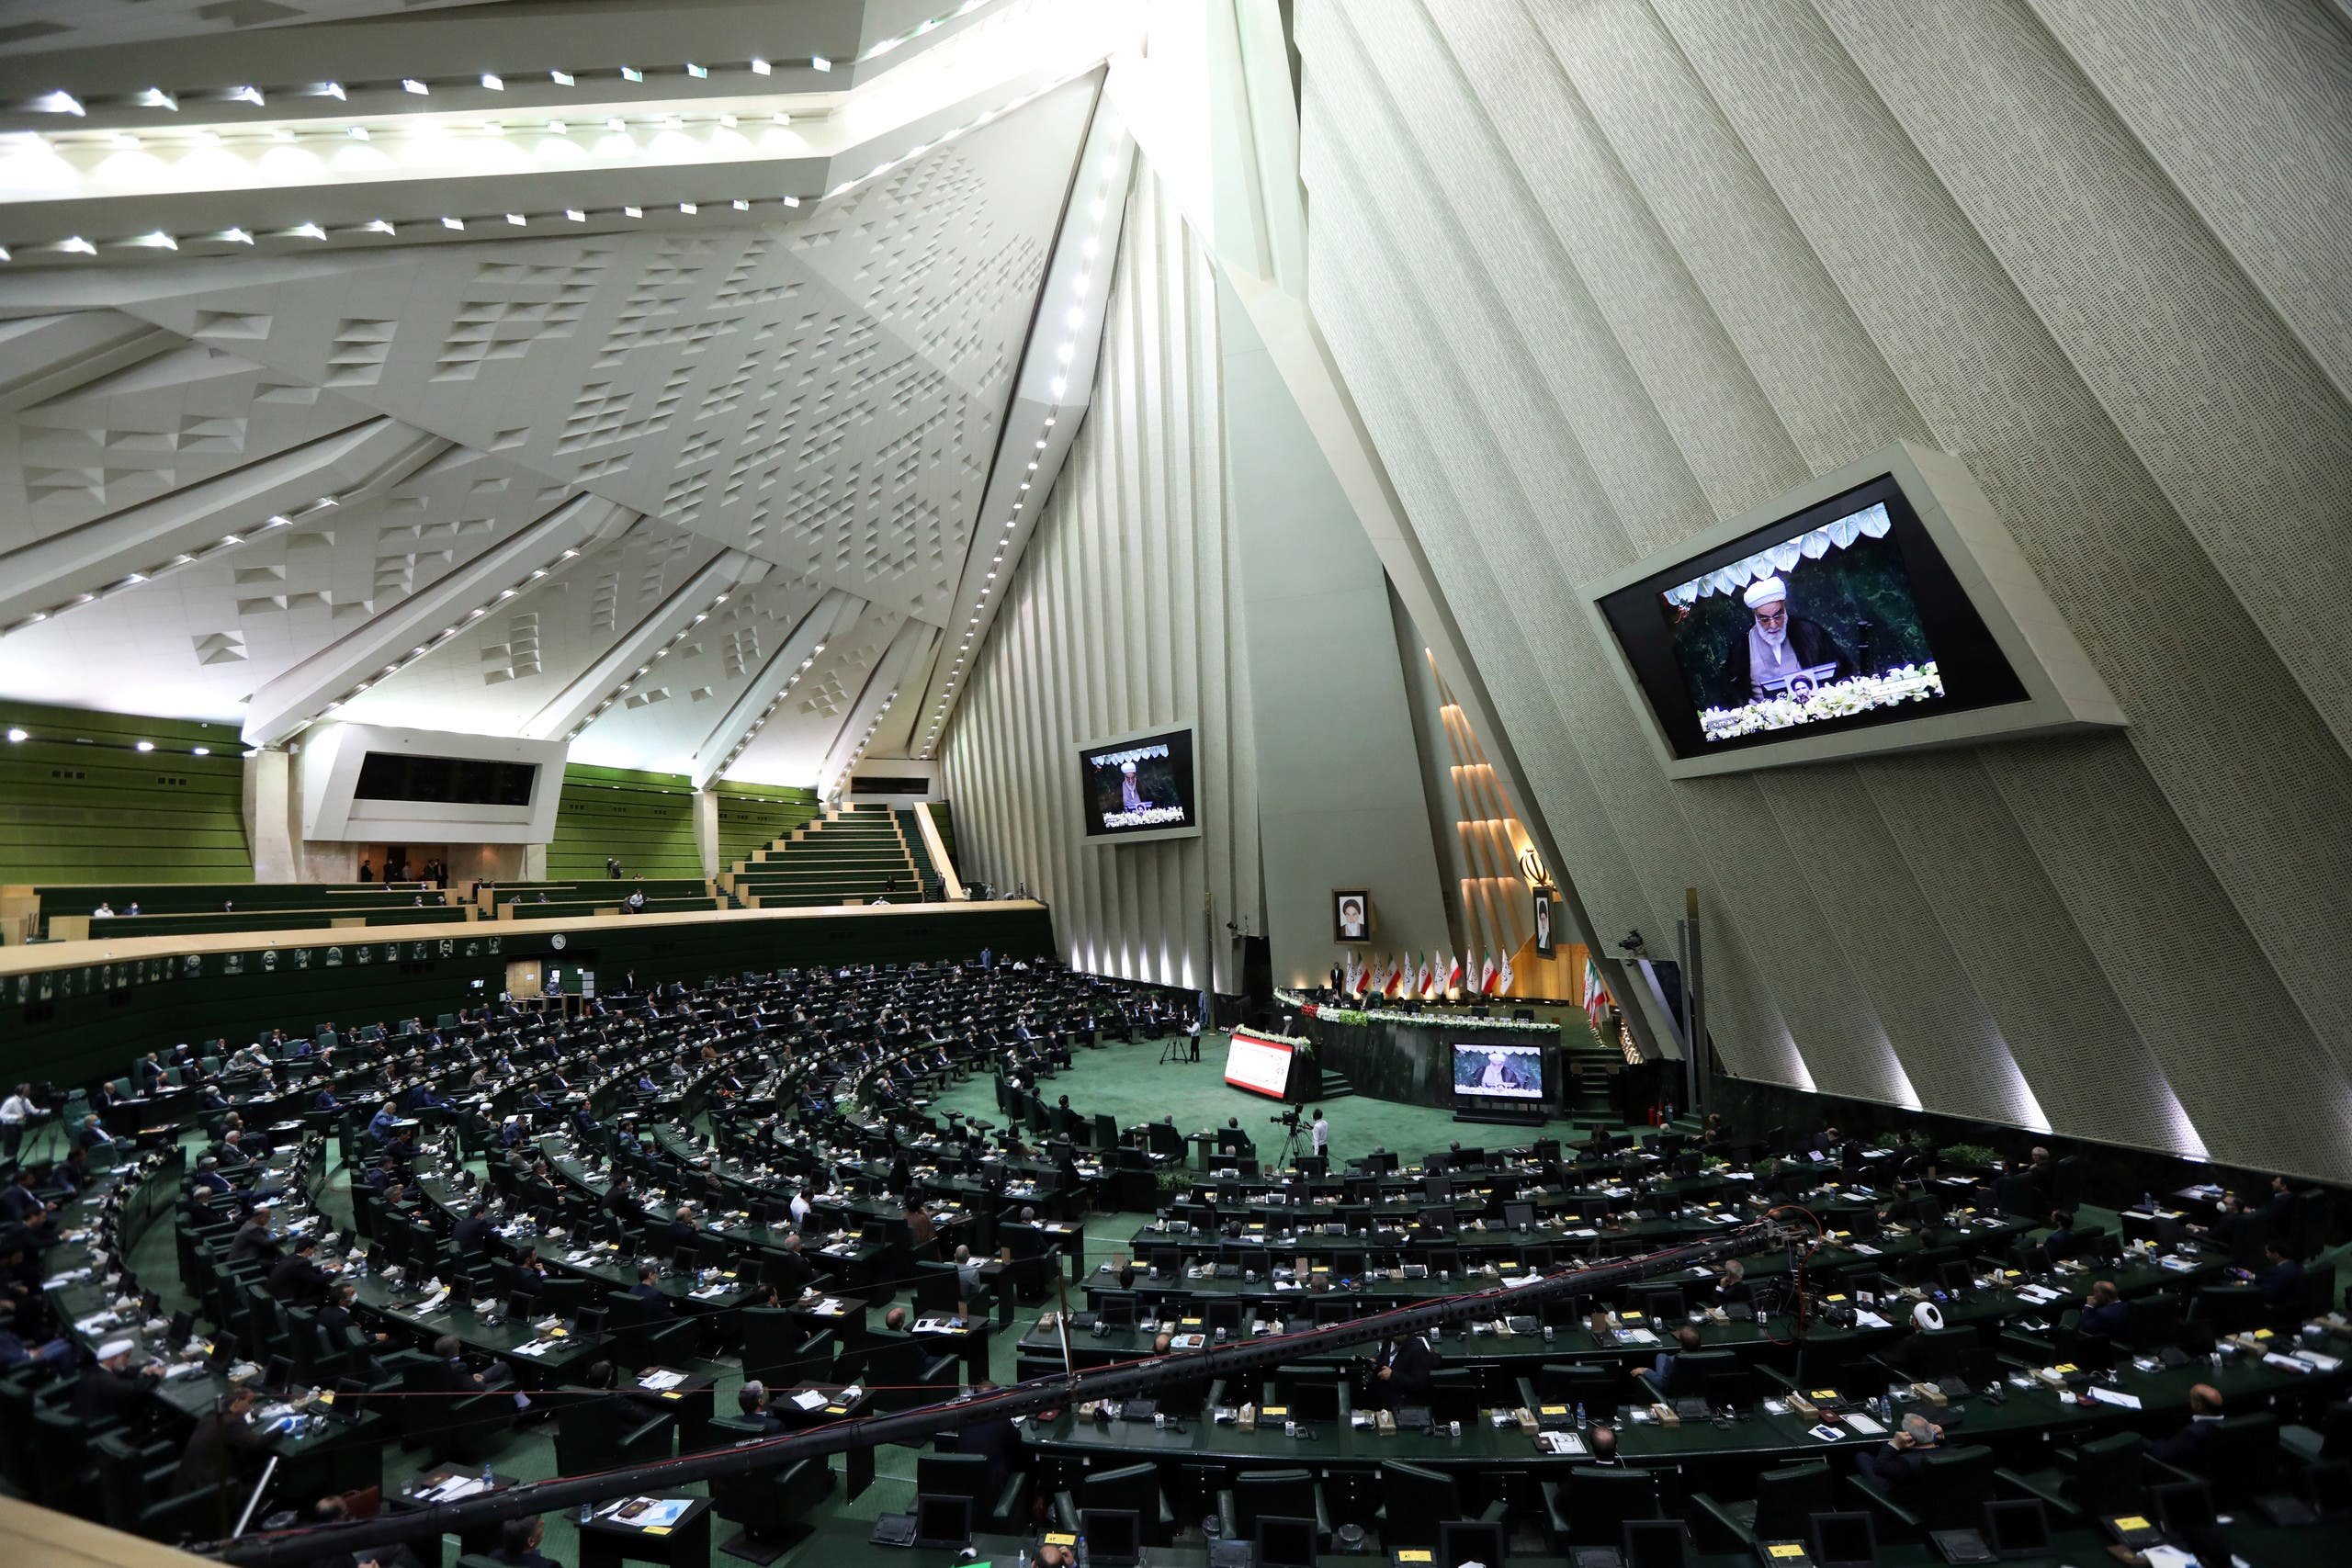 A general view of the Iranian parliament. (File photo: Reuters)